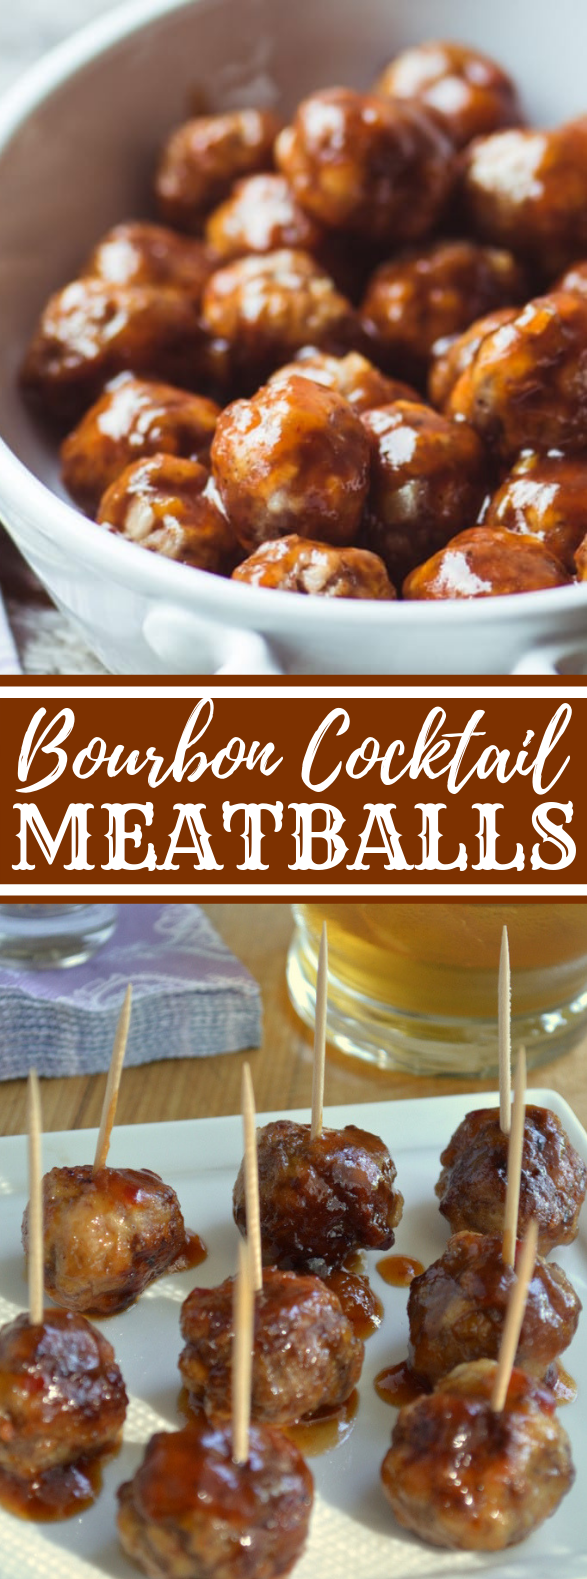 Bourbon Cocktail Meatballs #appetizers #partyrecipe